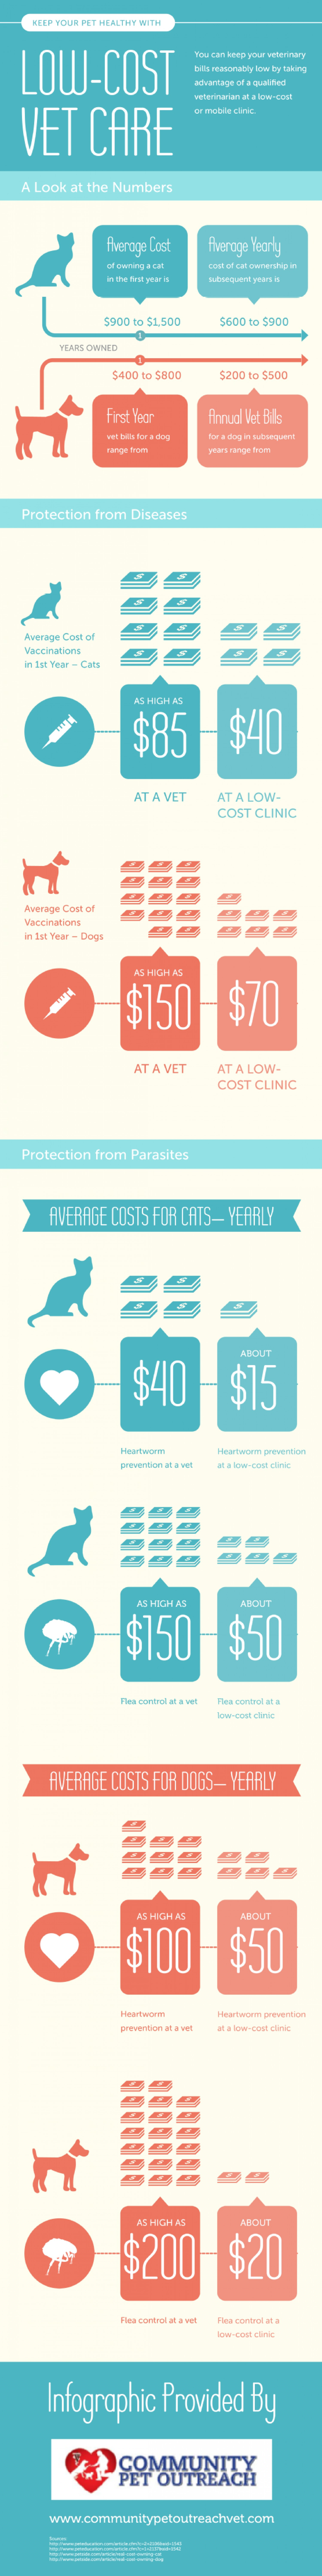 Keep Your Pet Healthy With Low Cost Vet Care Visual Ly Pet Insurance Cost Vets Health Insurance Cost